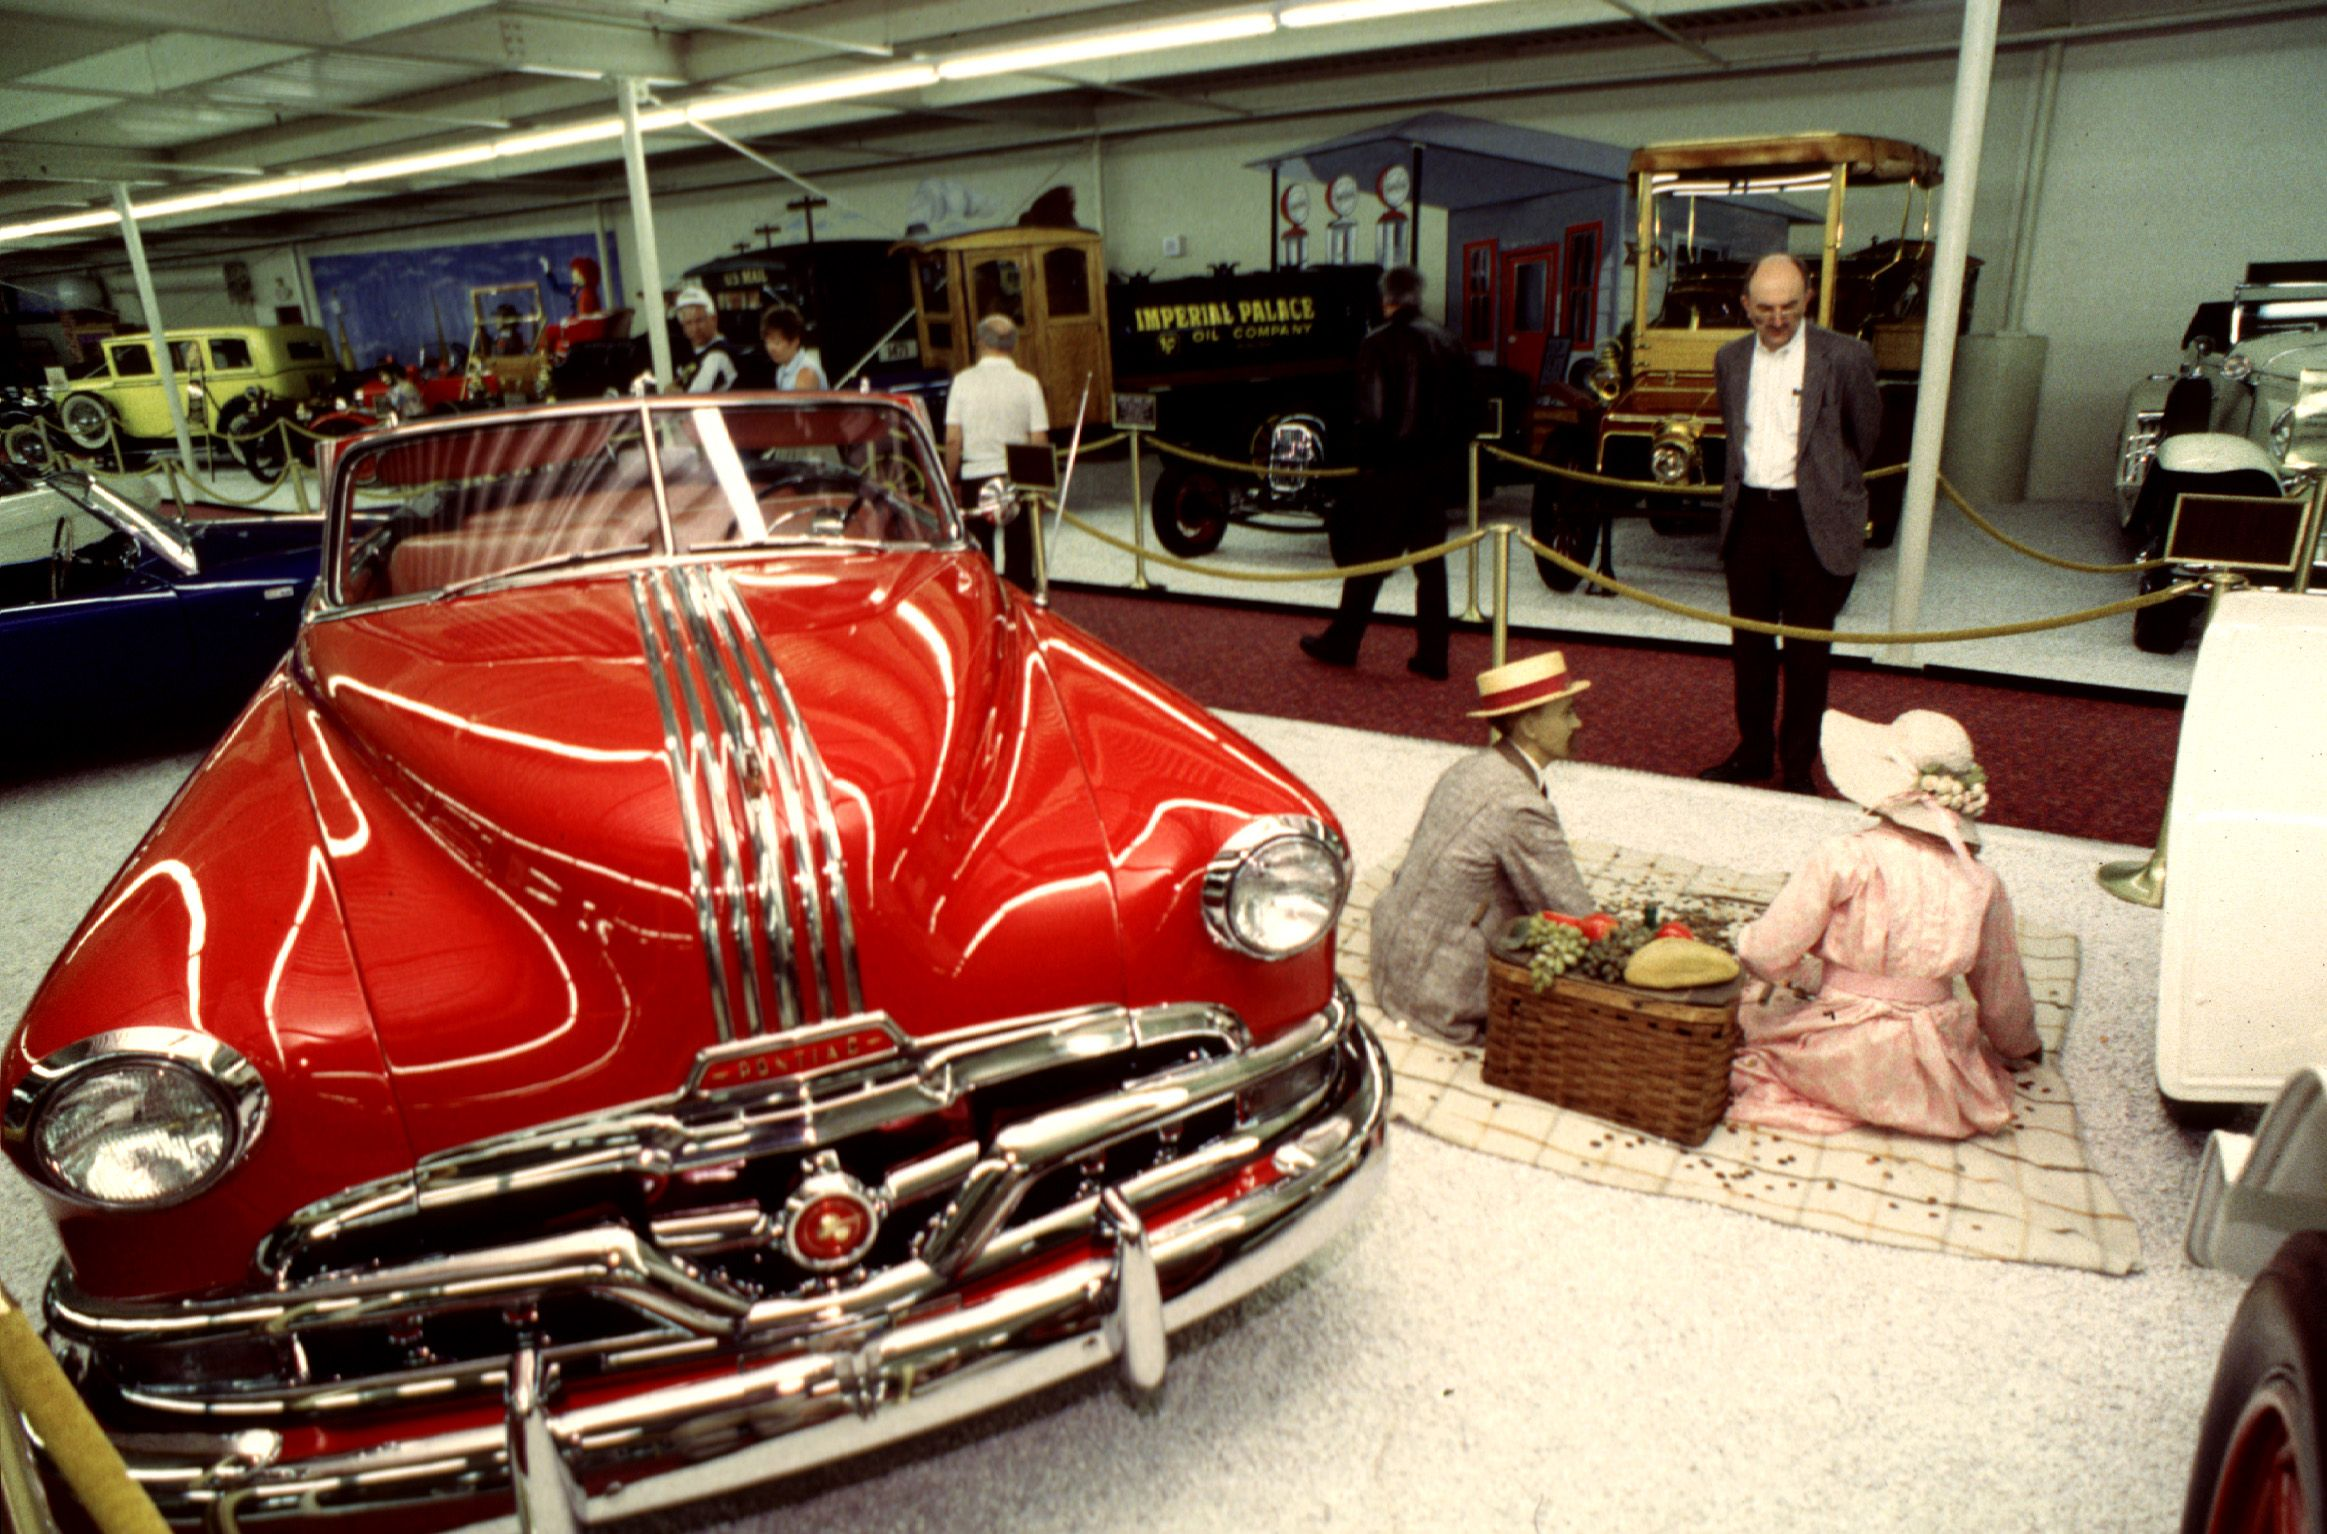 Antique Car Collection Imperial Palace Photo Credit Las Vegas News Bureau Photographers Very Cool Of Clic Cars